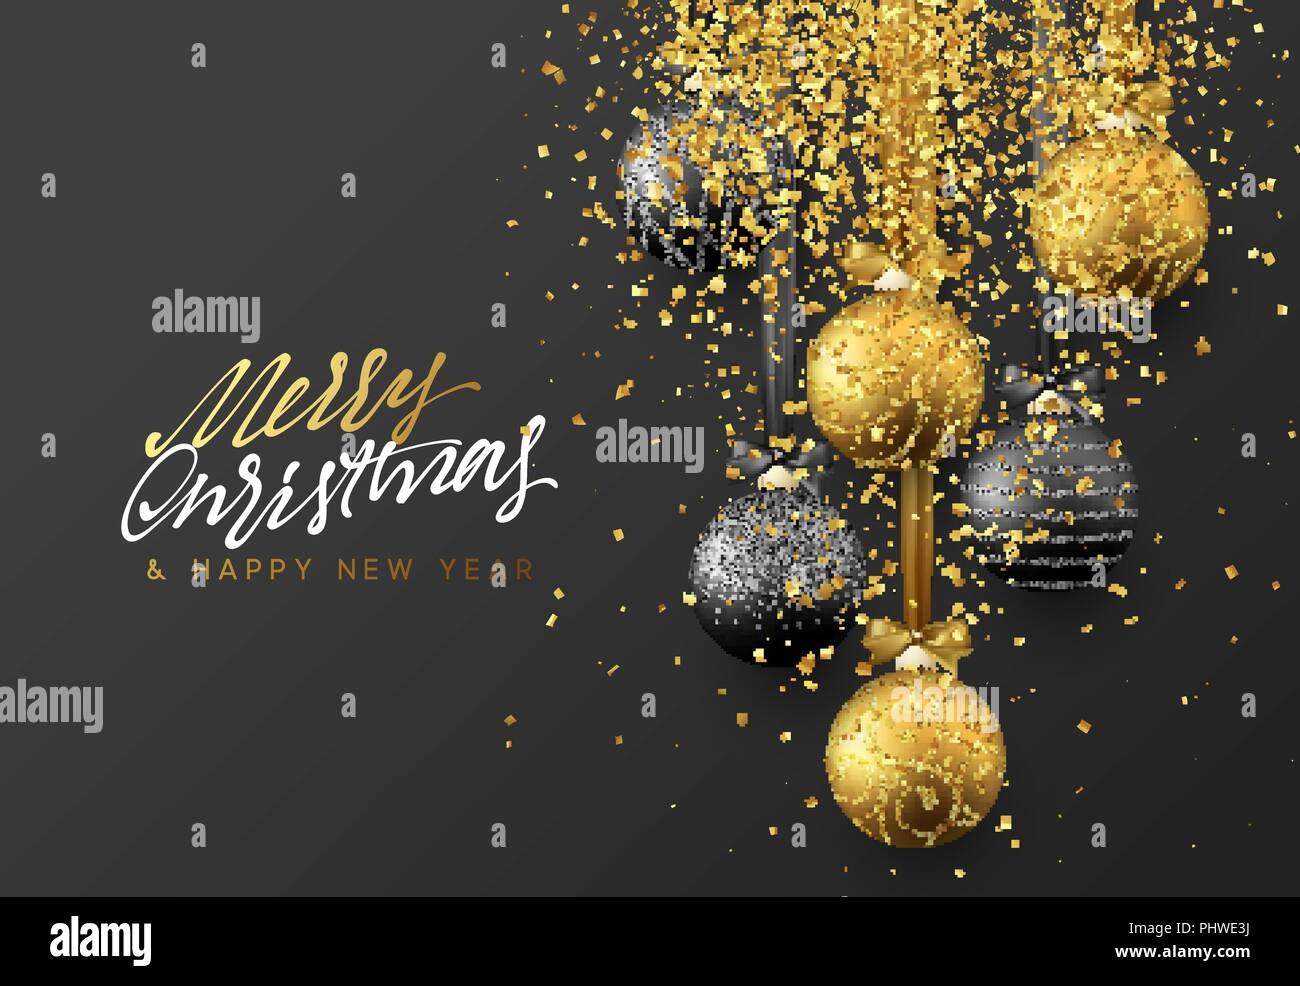 christmas greeting card design of xmas balls with golden glitter confetti on dark background